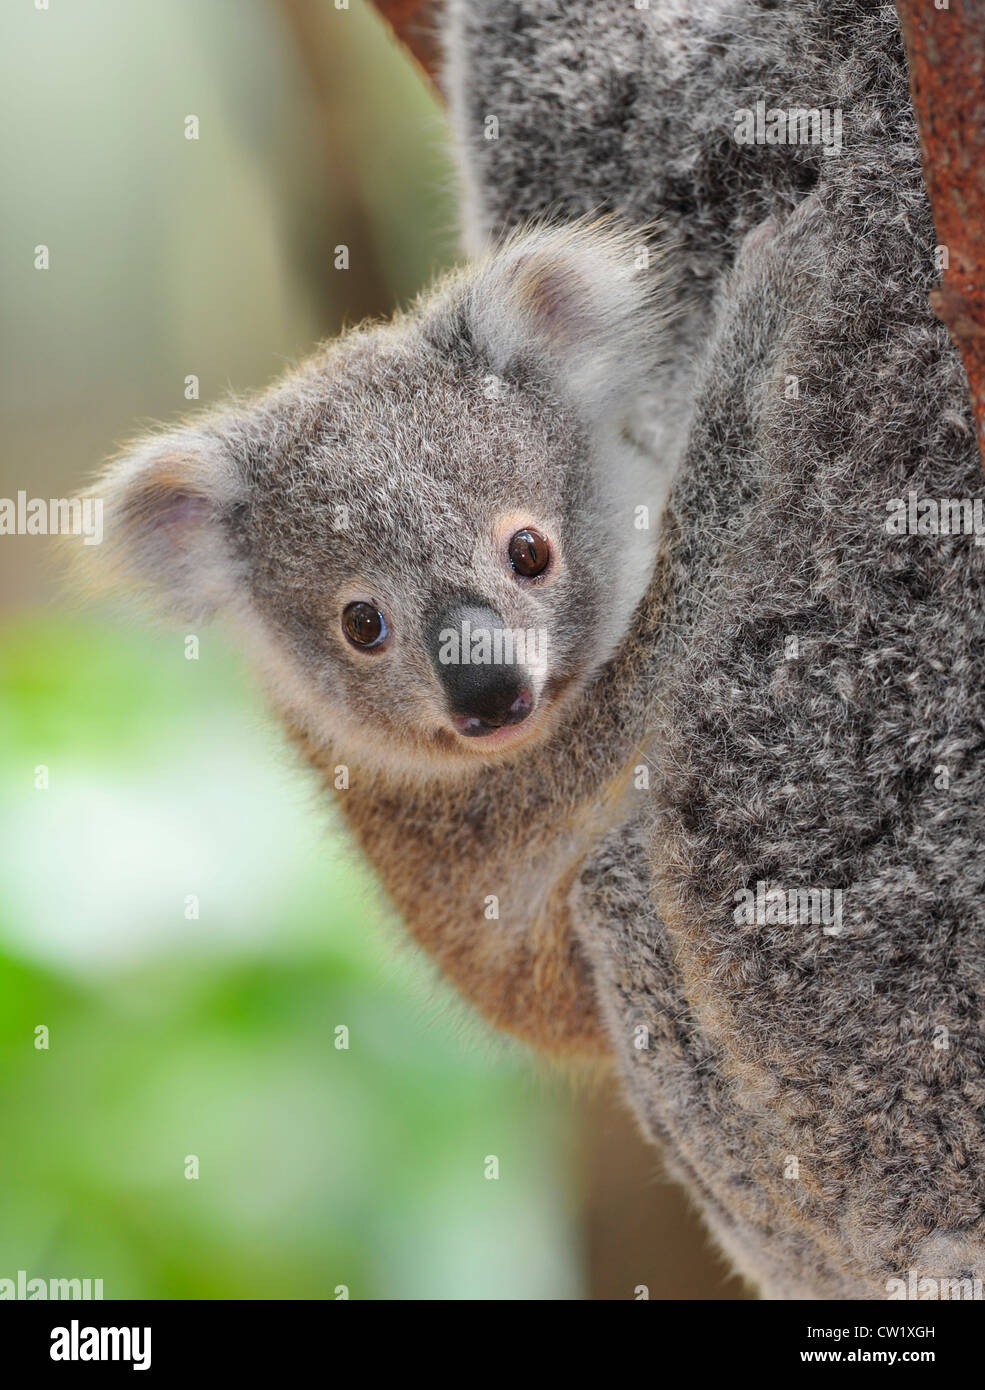 koala bear joey / baby hanging onto its mothers fur in ...